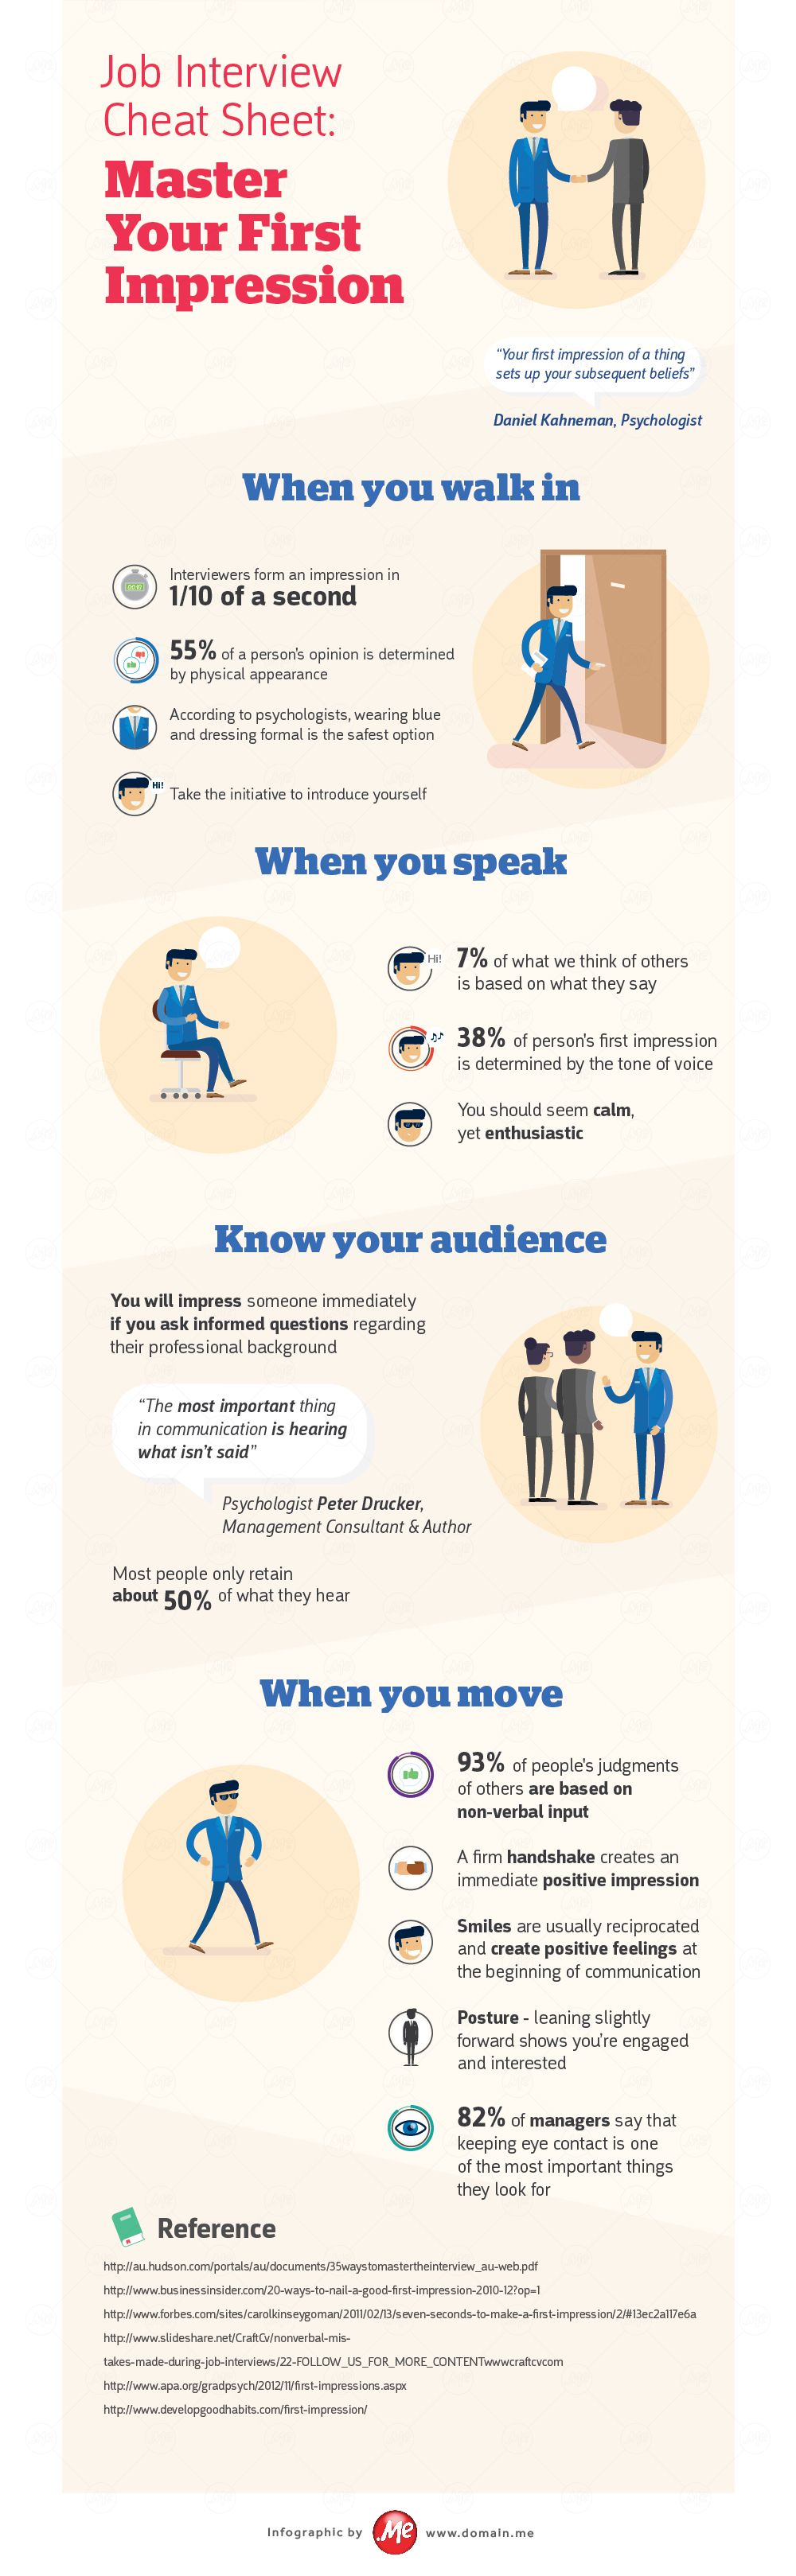 Job Interview Cheat Sheet U2013 Master Your First Impression #Infographic  #Career #Job